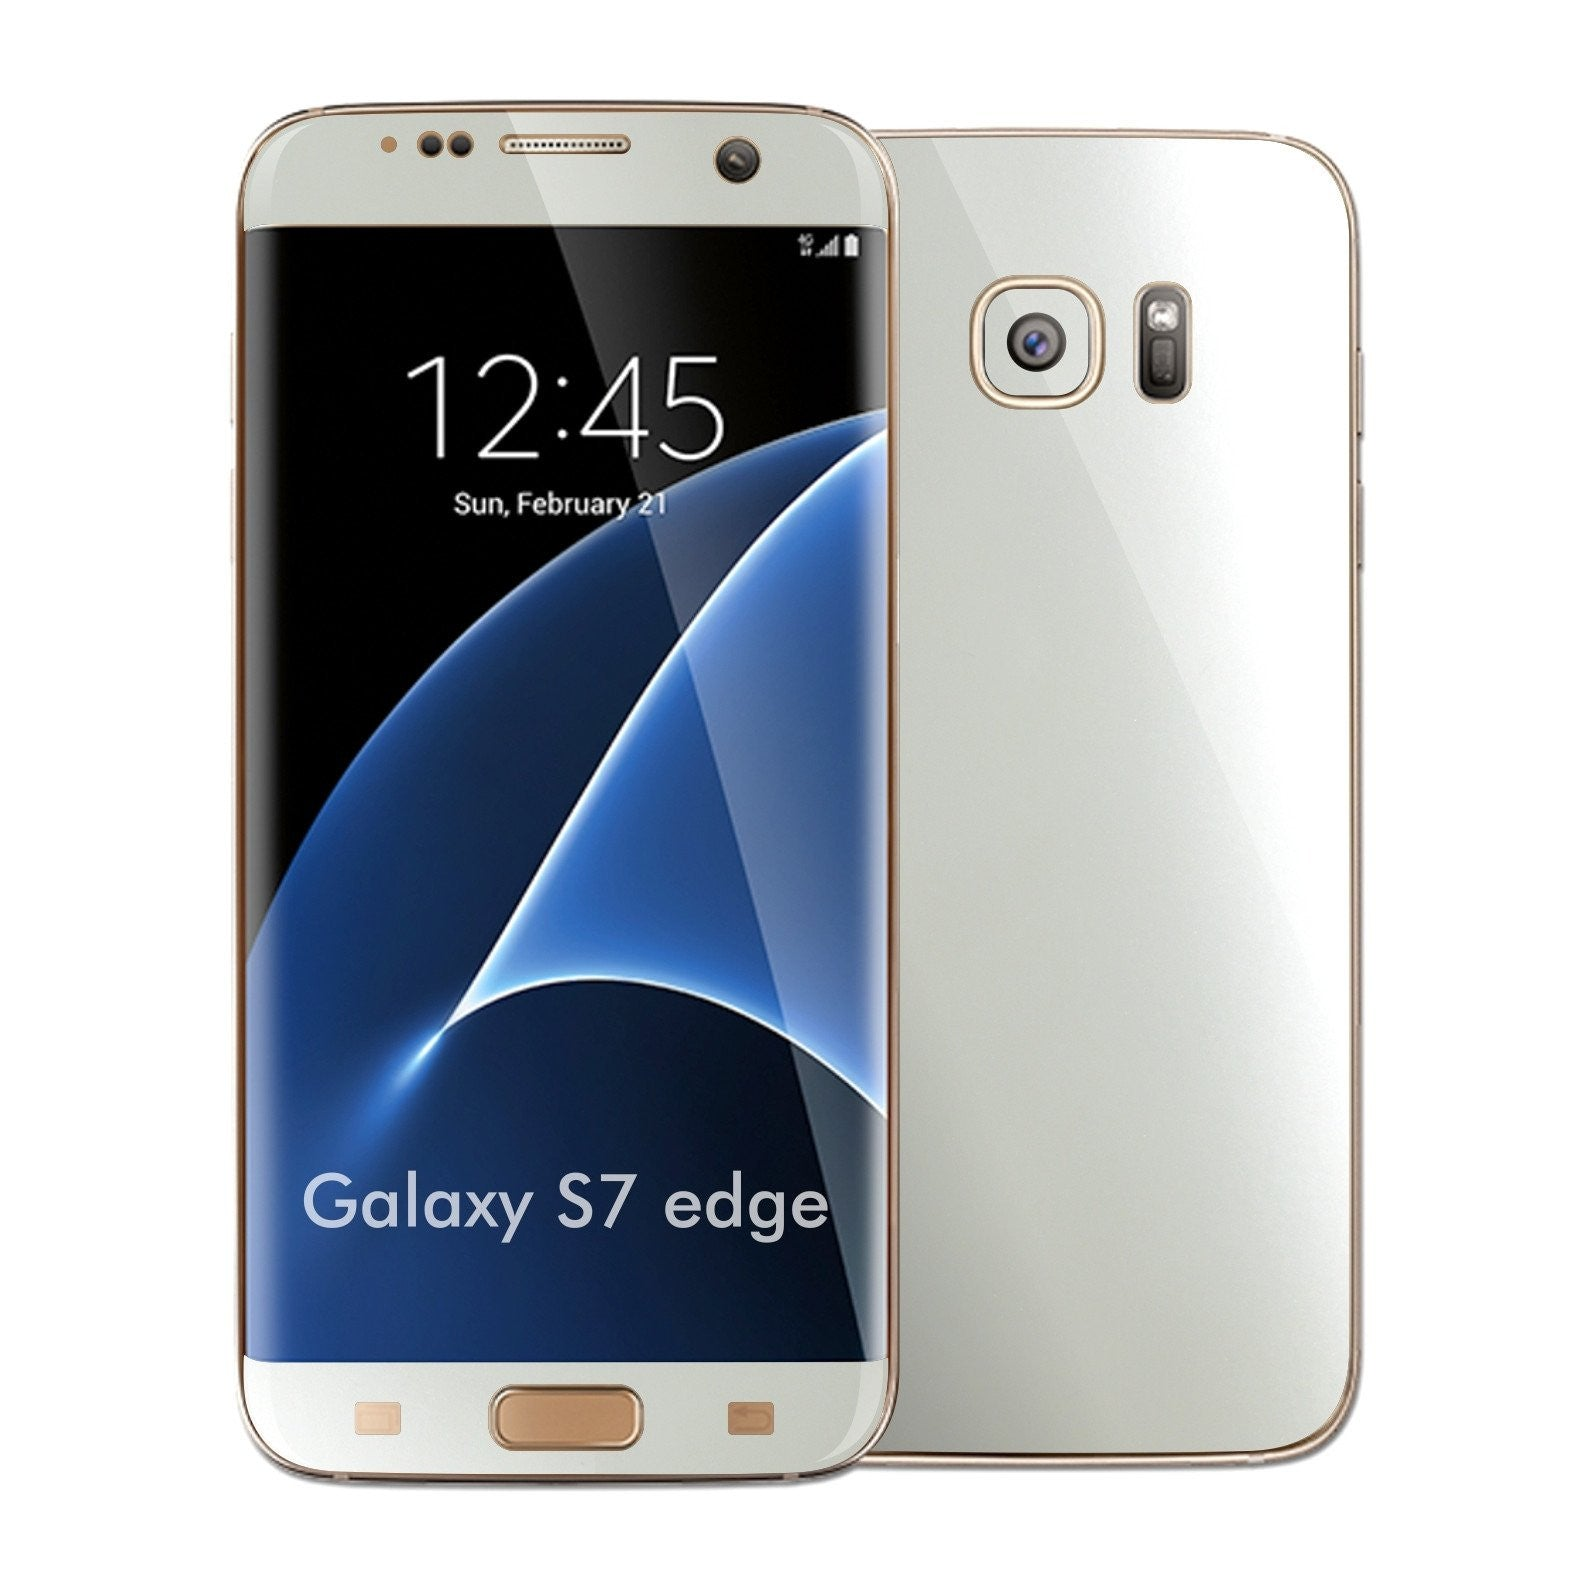 Samsung Galaxy S7 EDGE 3M Satin Pearl White Skin Wrap Decal Sticker Cover Protector by EasySkinz